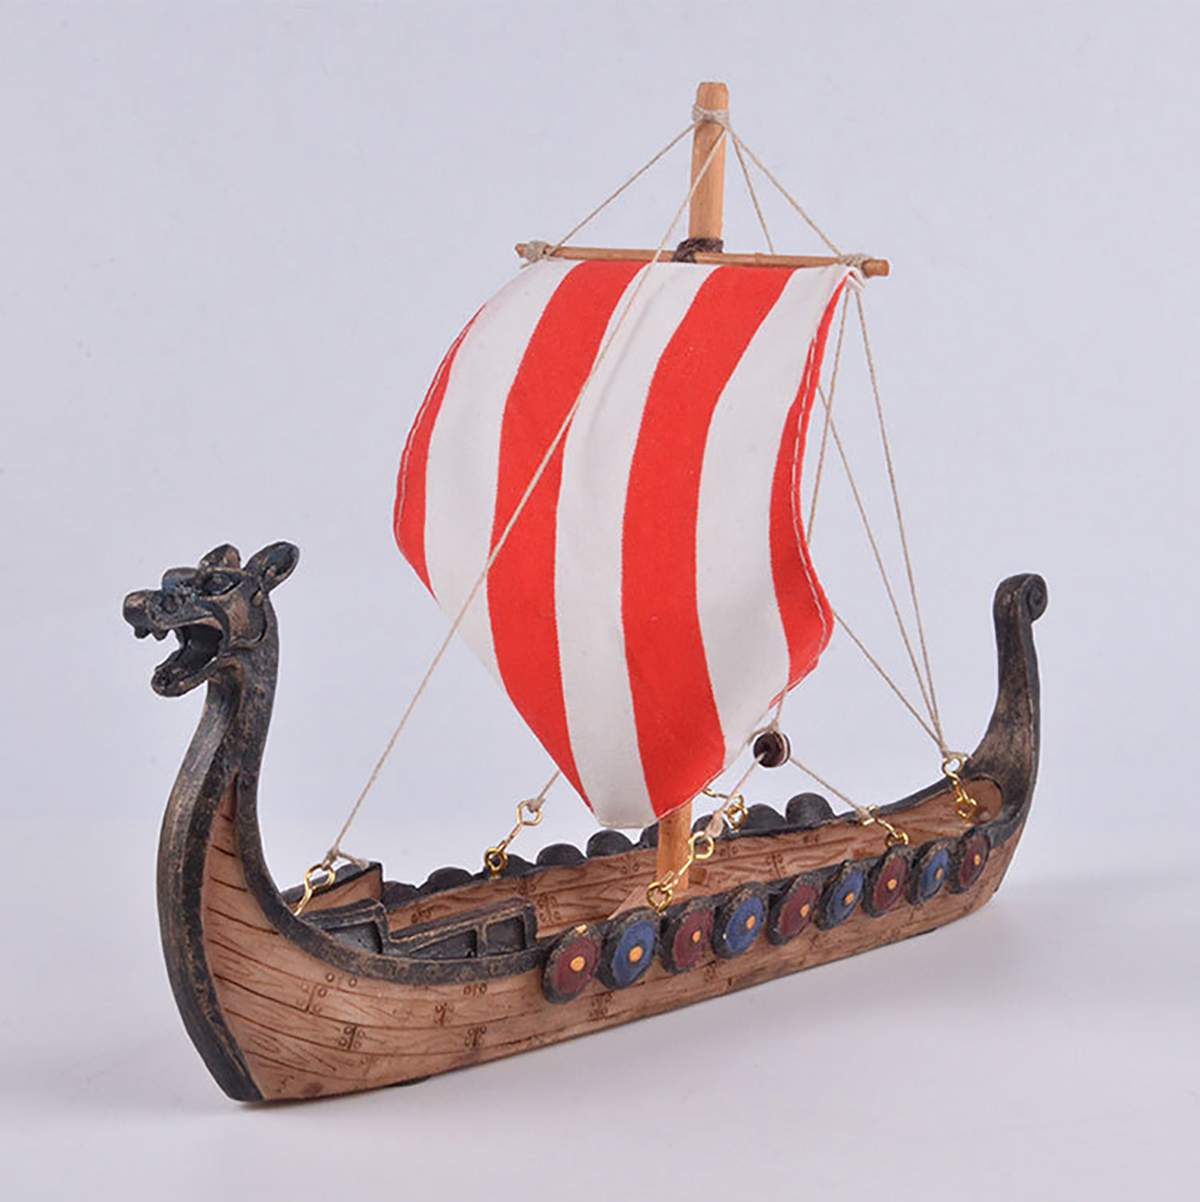 Viking longship dragon boat ornaments Carved resin craft home decorations vikings ships sailing model toy gifts pirate boat|Statues & Sculptures| - AliExpress